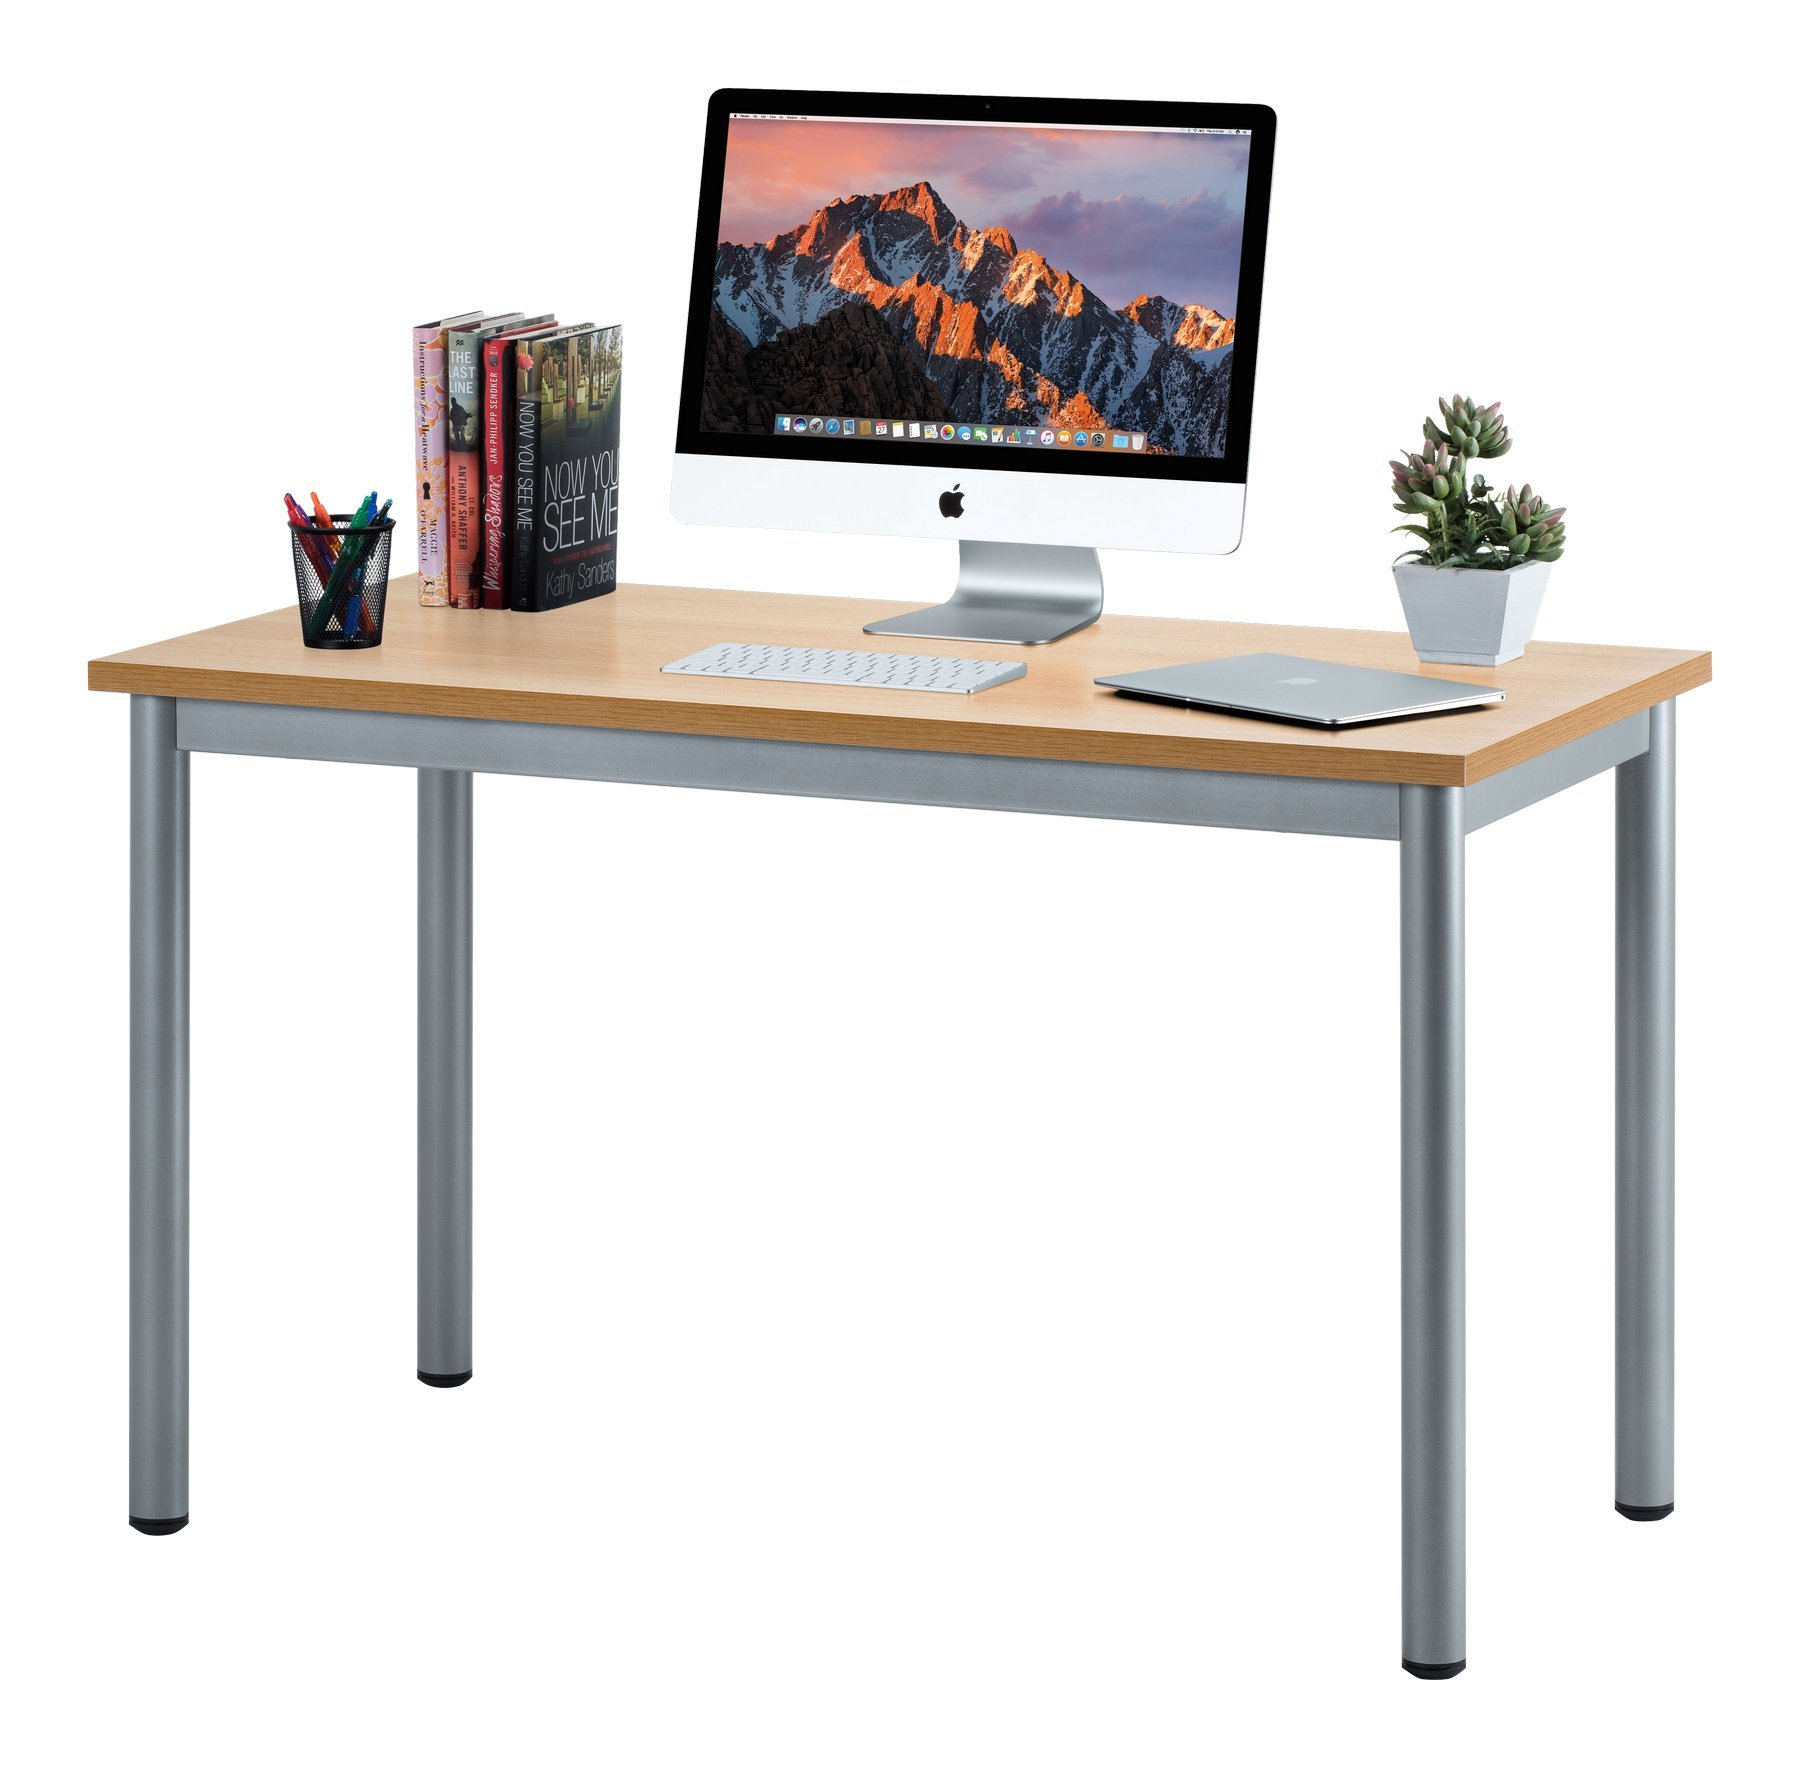 "Fineboard 47"" Home Office Computer Desk Writing Table, Beige/Gray"